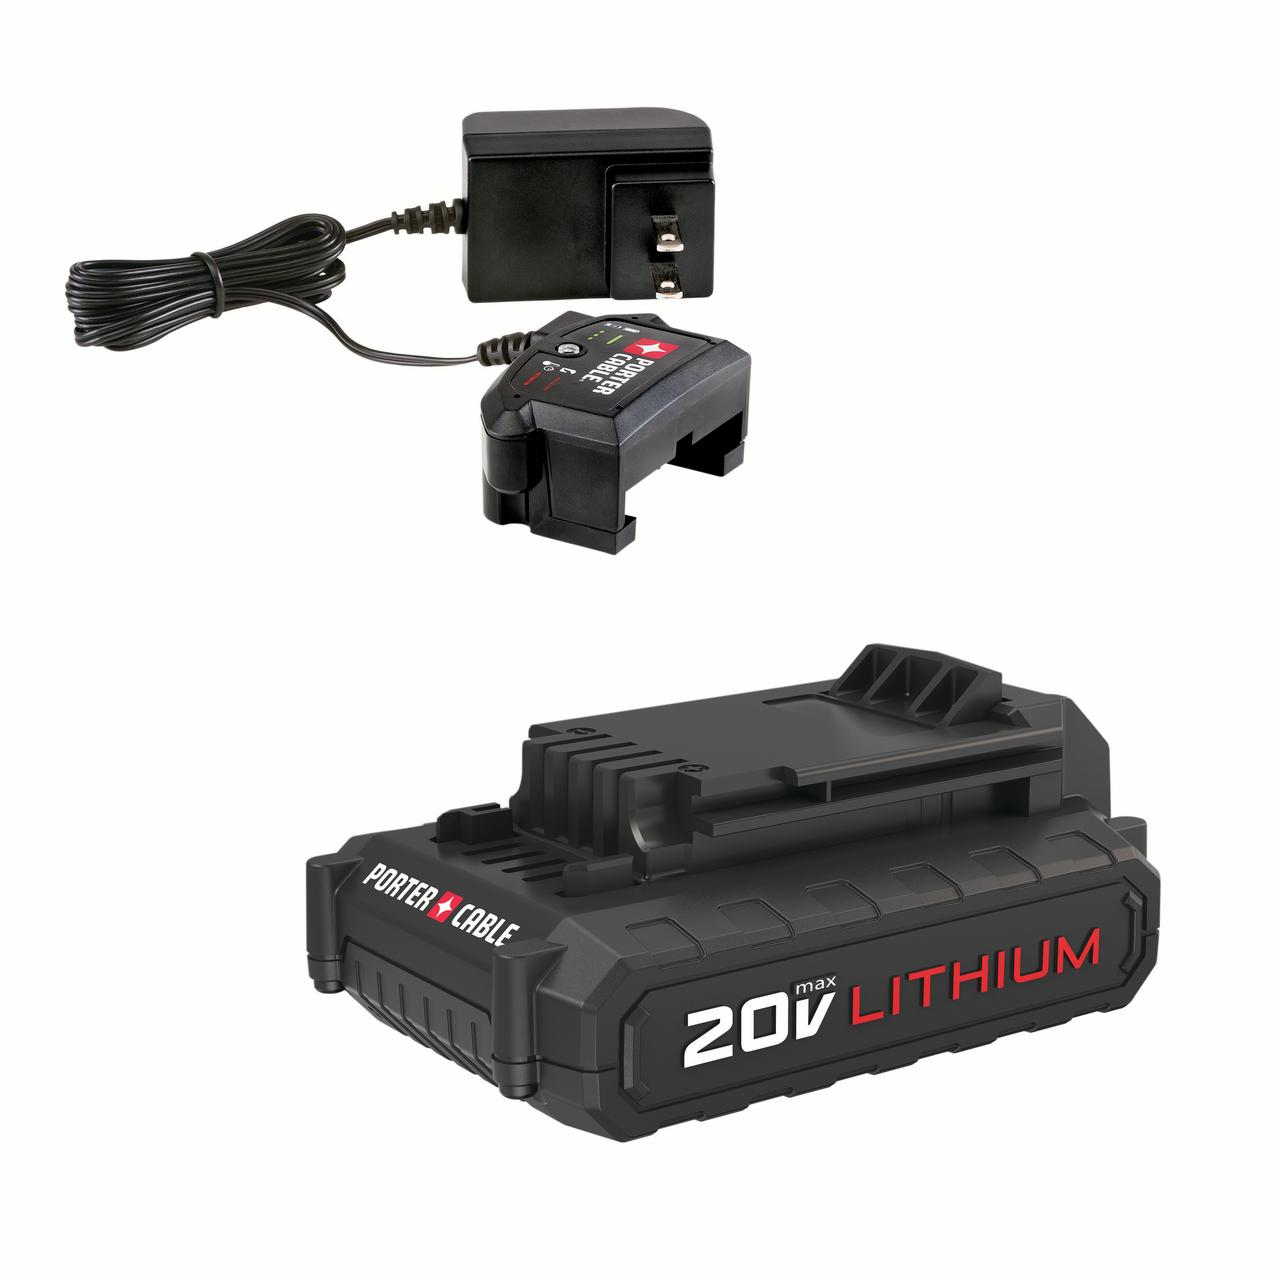 PORTER CABLE 20-Volt Max 1.3-Amp Lithium-Ion Battery And Cup Charger Kit, PCC899LA